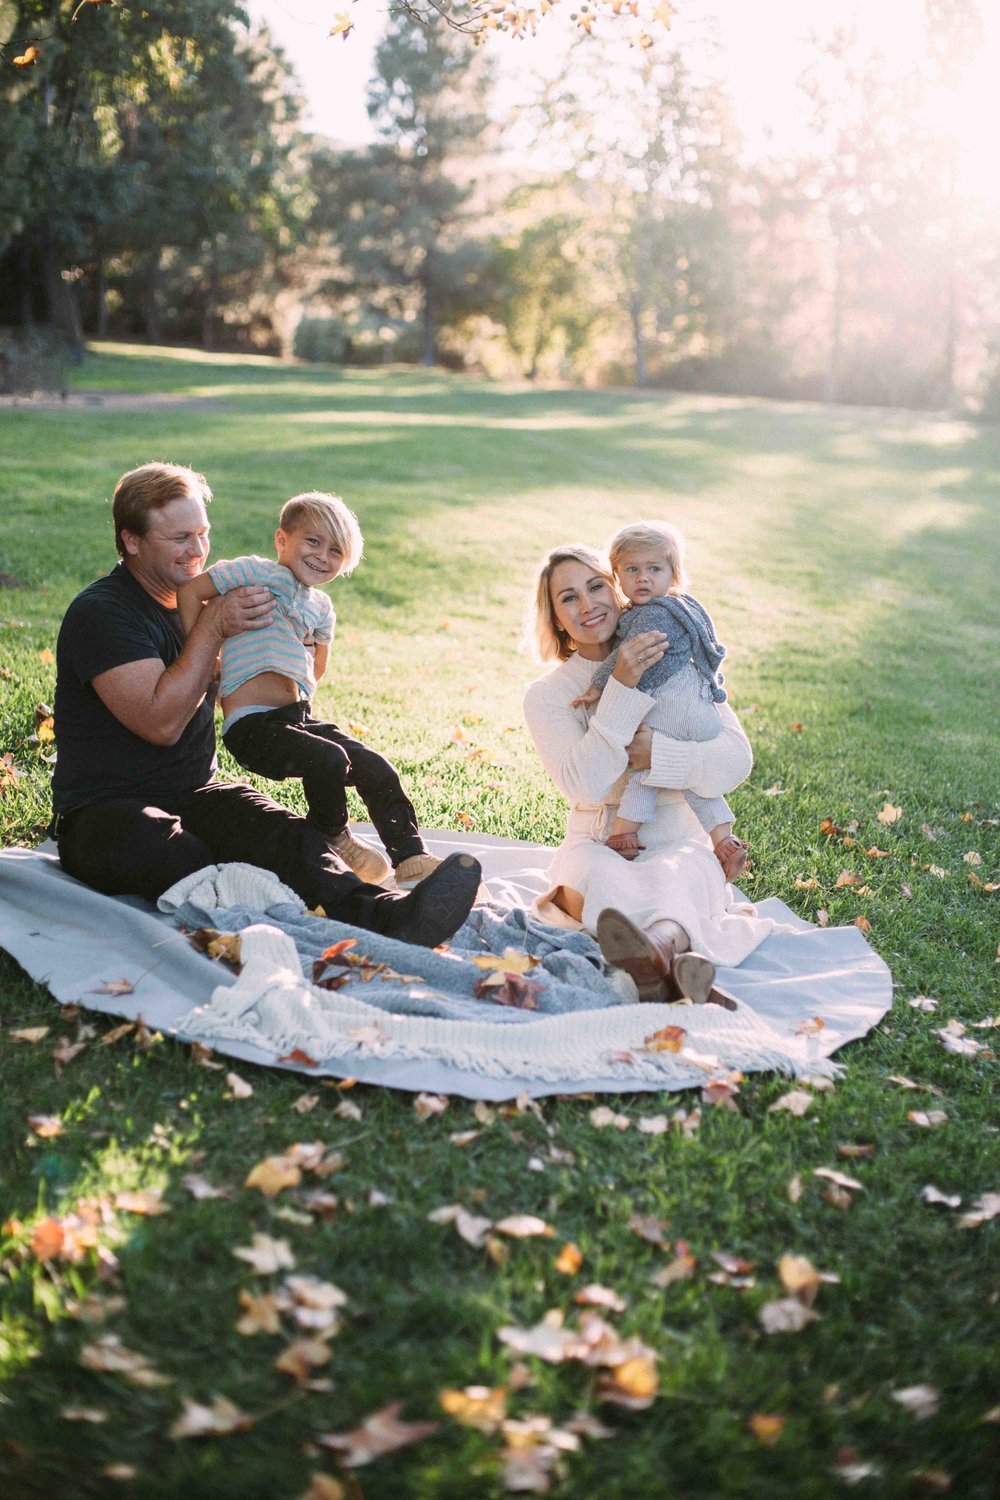 fall-family-portraits-turning-leaves-san-dieguito-park-9.jpg